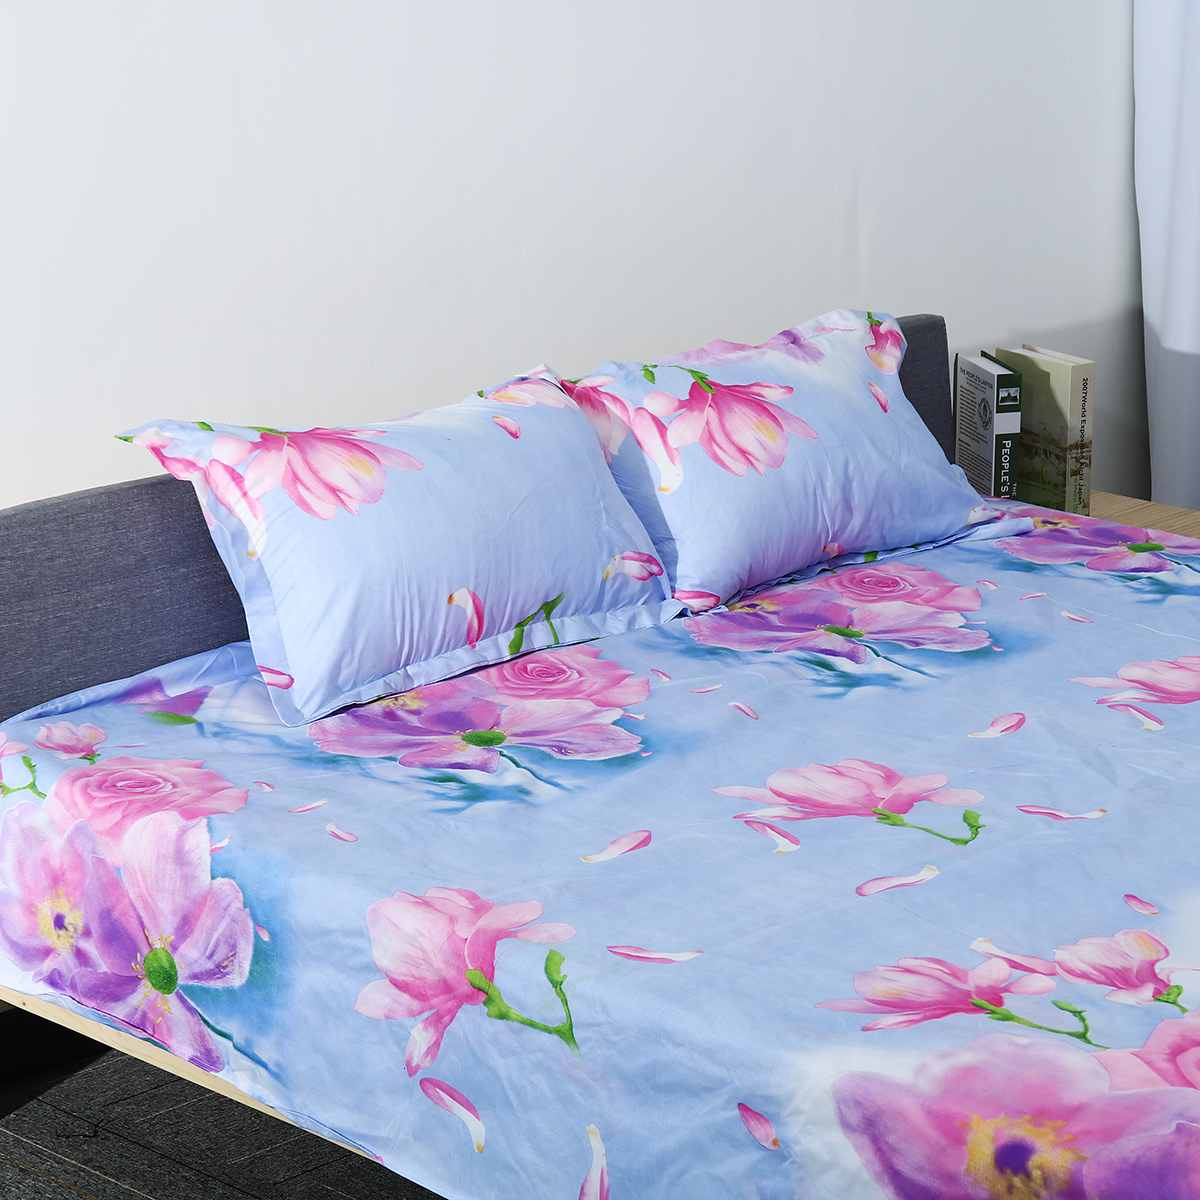 Rose Cotton Wedding Bedding Set Queen/King/Single Pillowcases Duvet Cover Bed Set Bedspread Bedclothes With/Without Bed Sheet